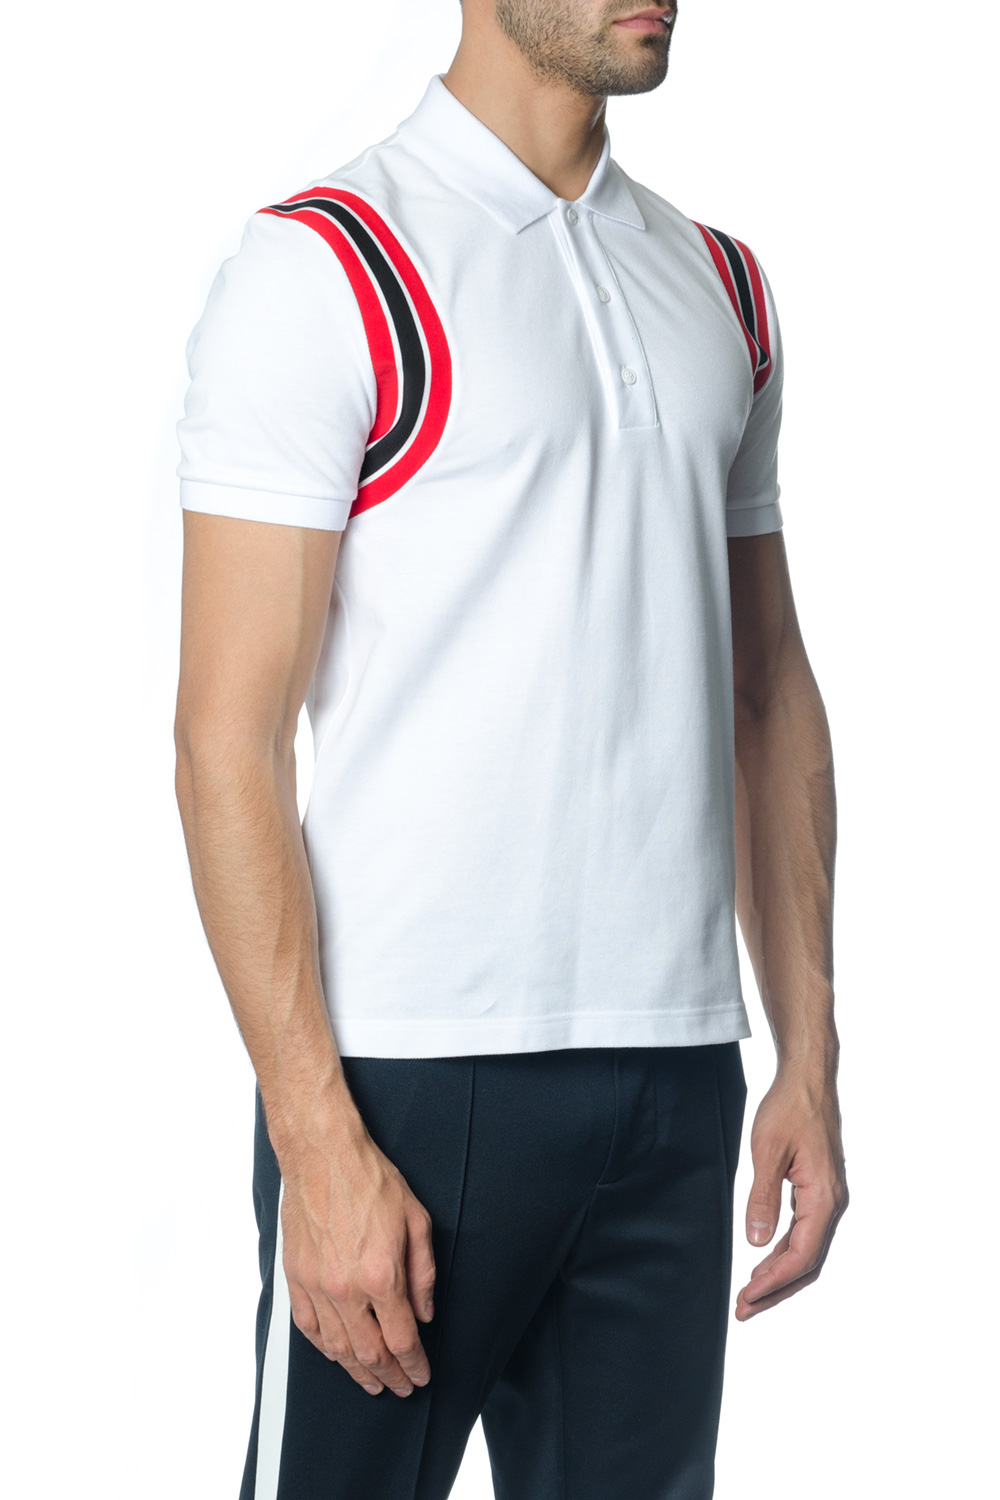 55bc4931a6d9 BLACK COTTON POLO SHIRT WITH CONTRASTING STRIPES. VALENTINO